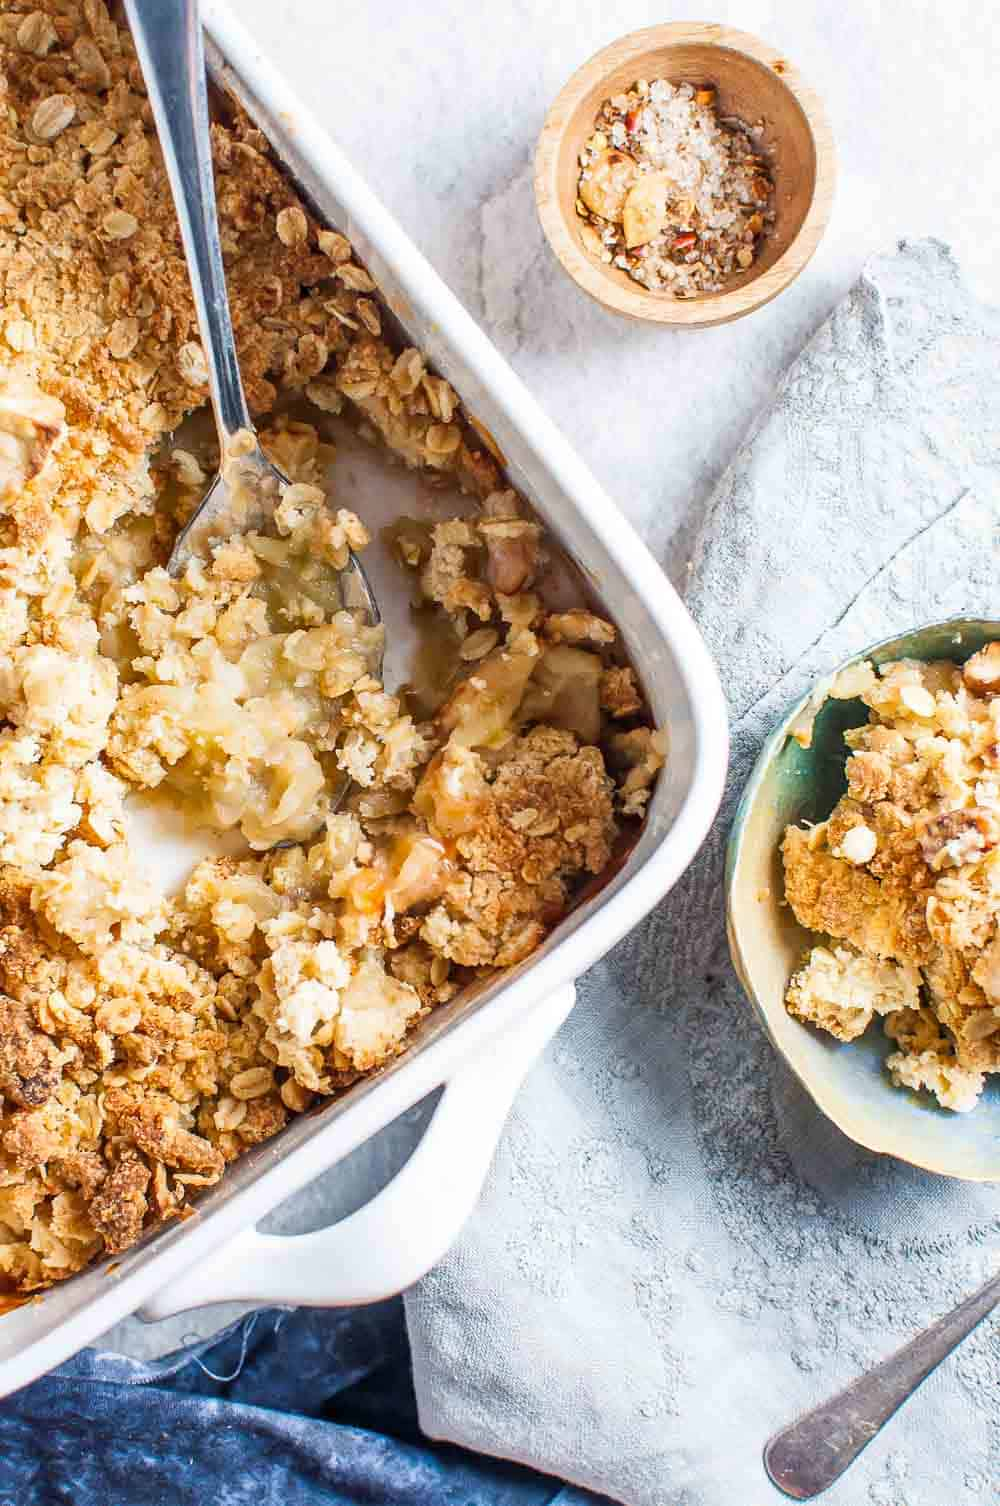 Sugar Free Apple Crumble in a baking dish